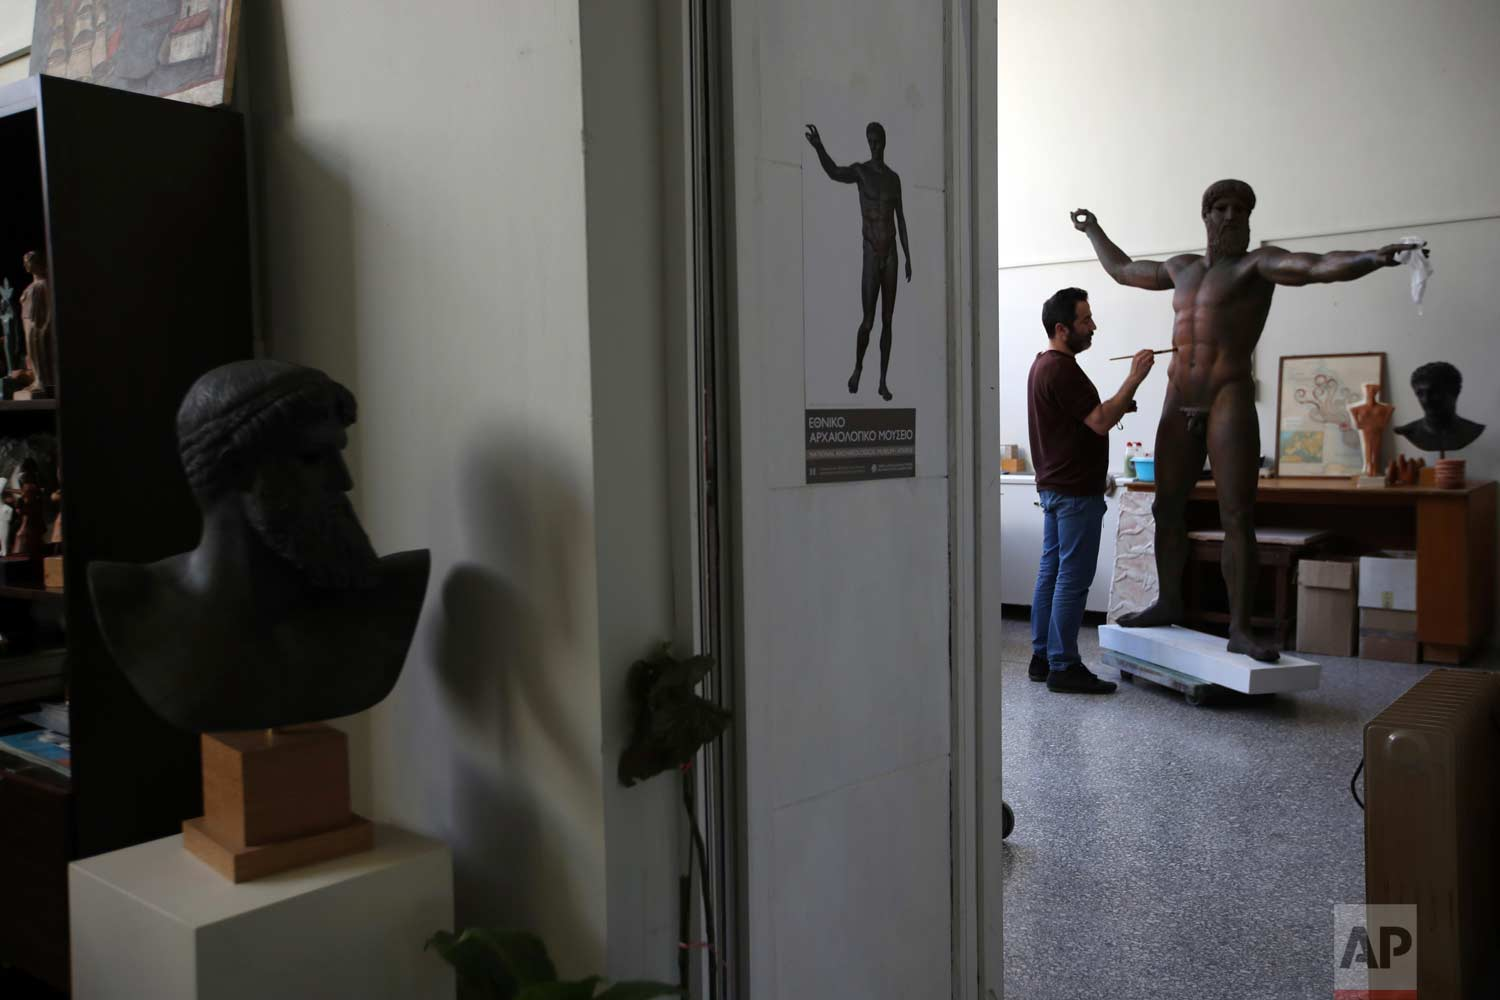 In this Tuesday, Jan. 16, 2018, a sculptor paints a plaster replica of the seven-foot bronze statue of Zeus, or Poseidon, made in the mid-5th century B.C. in the Culture Ministry's Lab in Athens. (AP Photo/Thanassis Stavrakis)